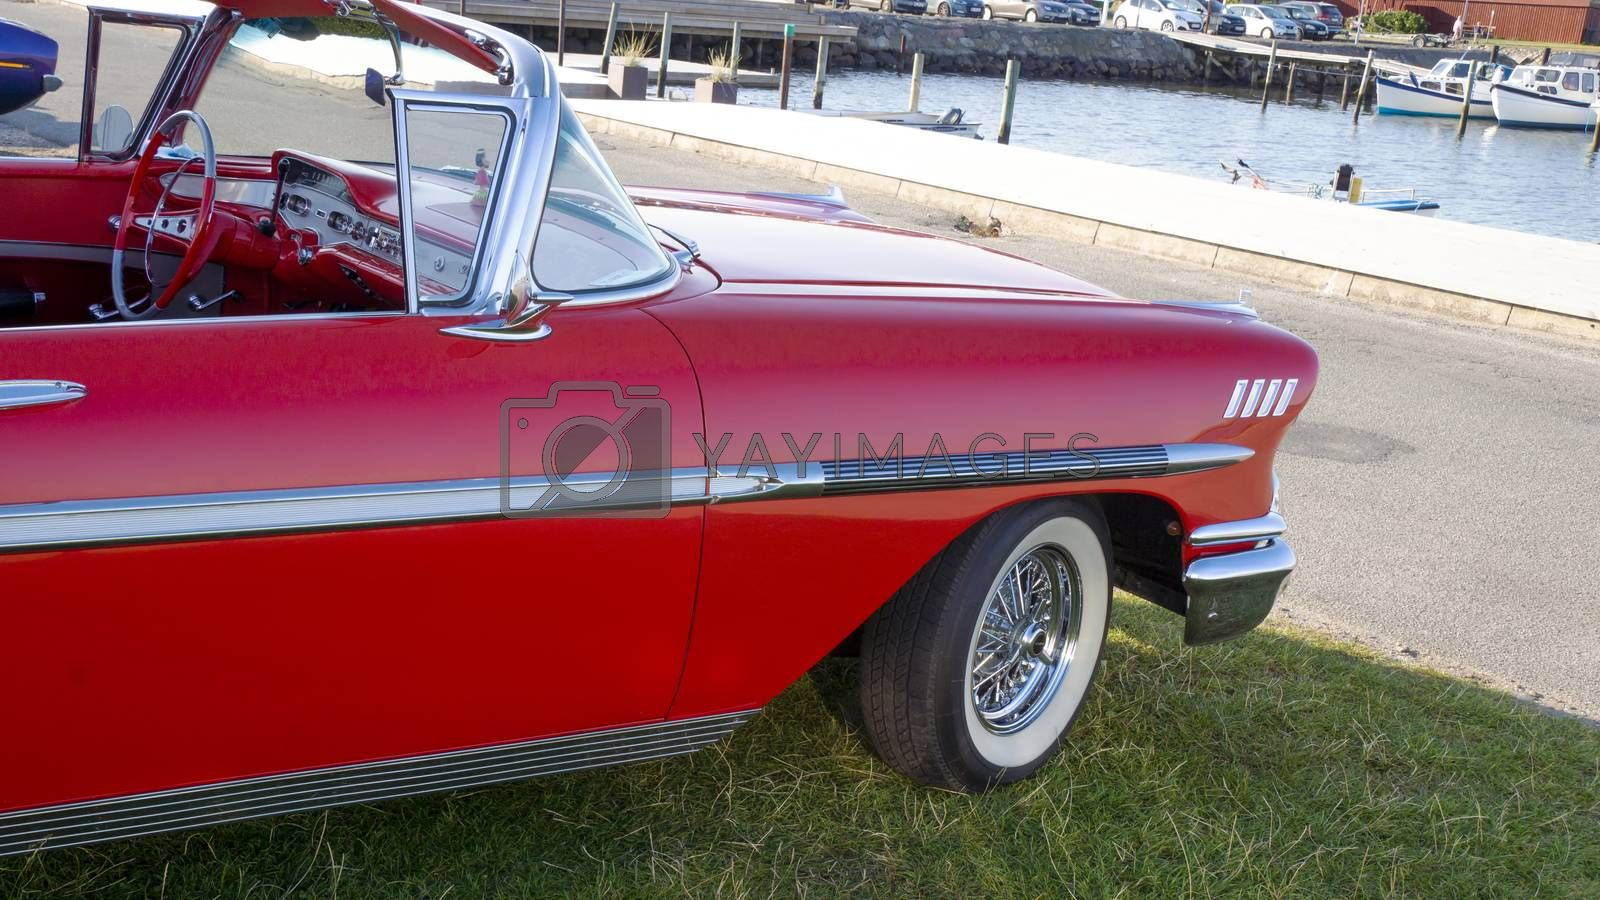 Royalty free image of Classic old Cars by Fr@nk